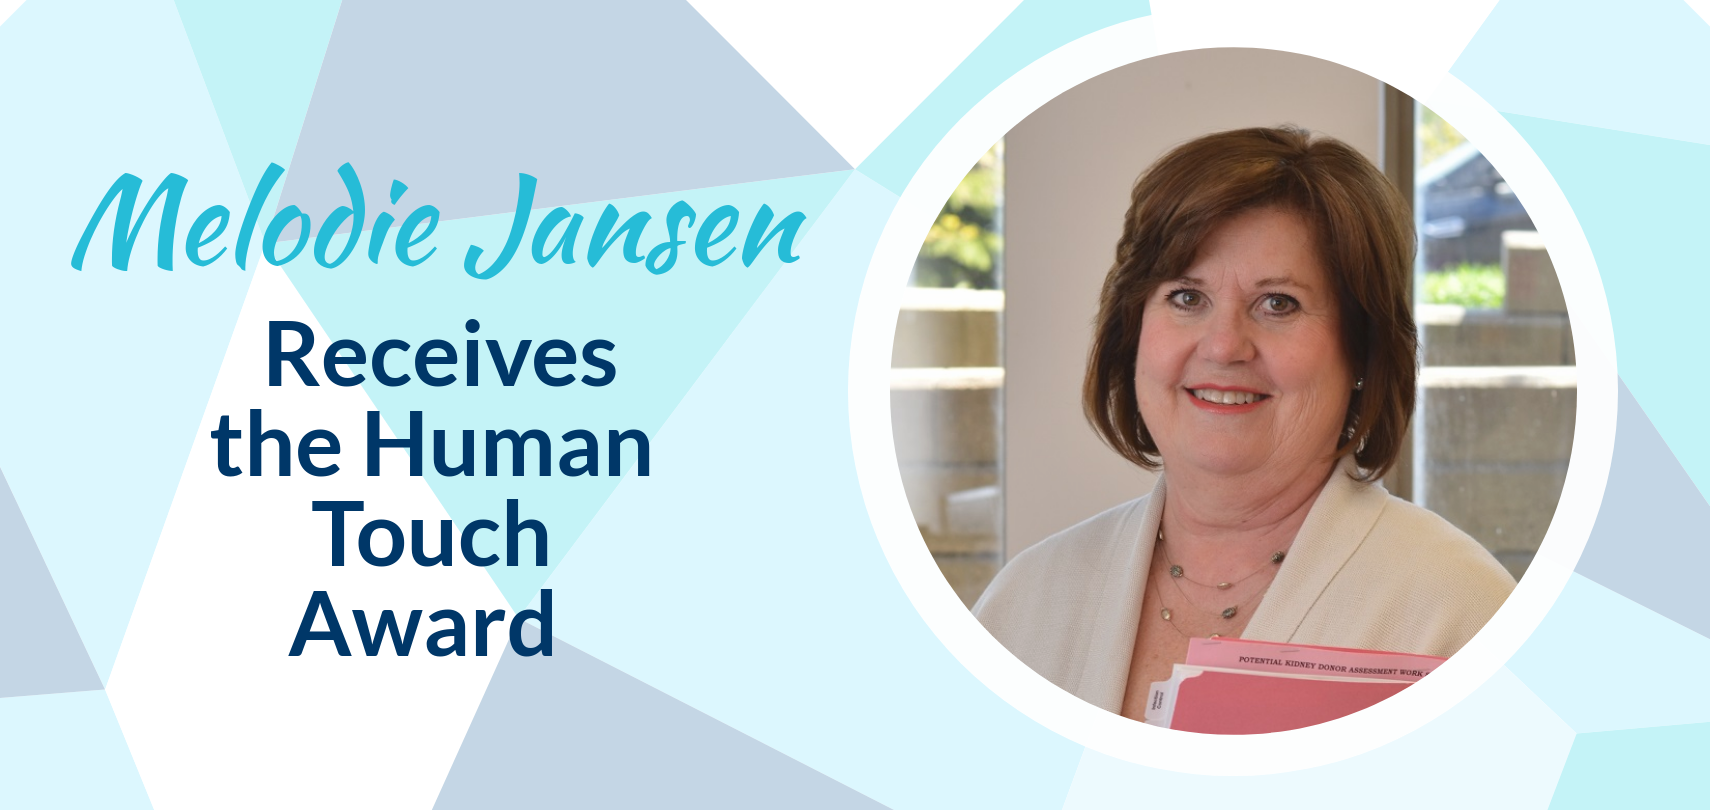 Photo of Melodie Jansen, Winner of 2018 Human Touch Award